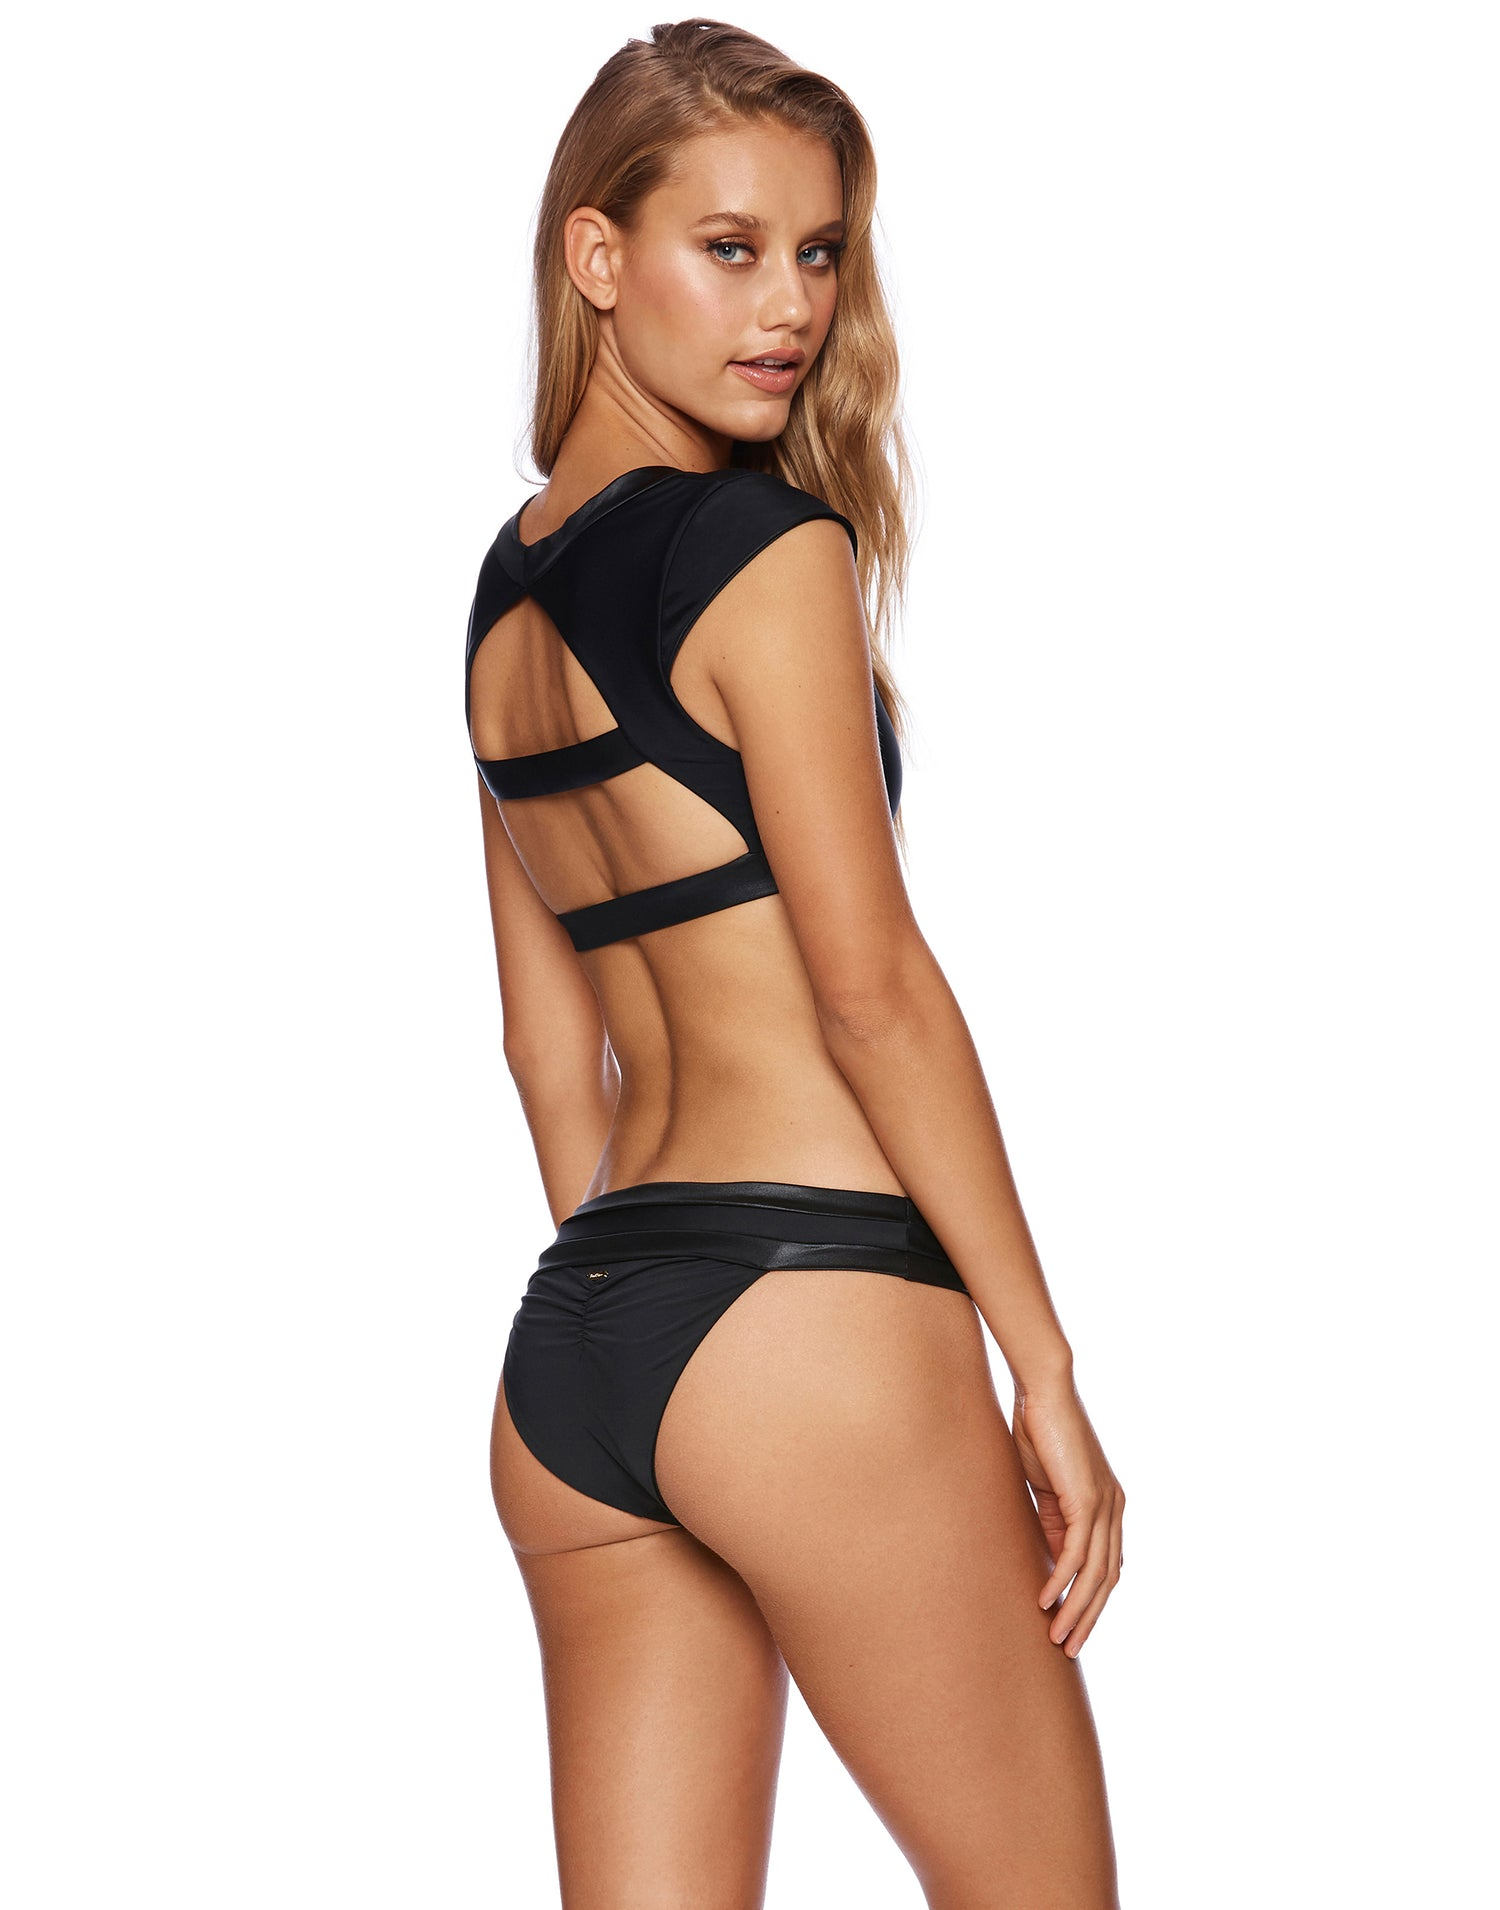 Mia Full Coverage Bikini Bottom in Black - back view